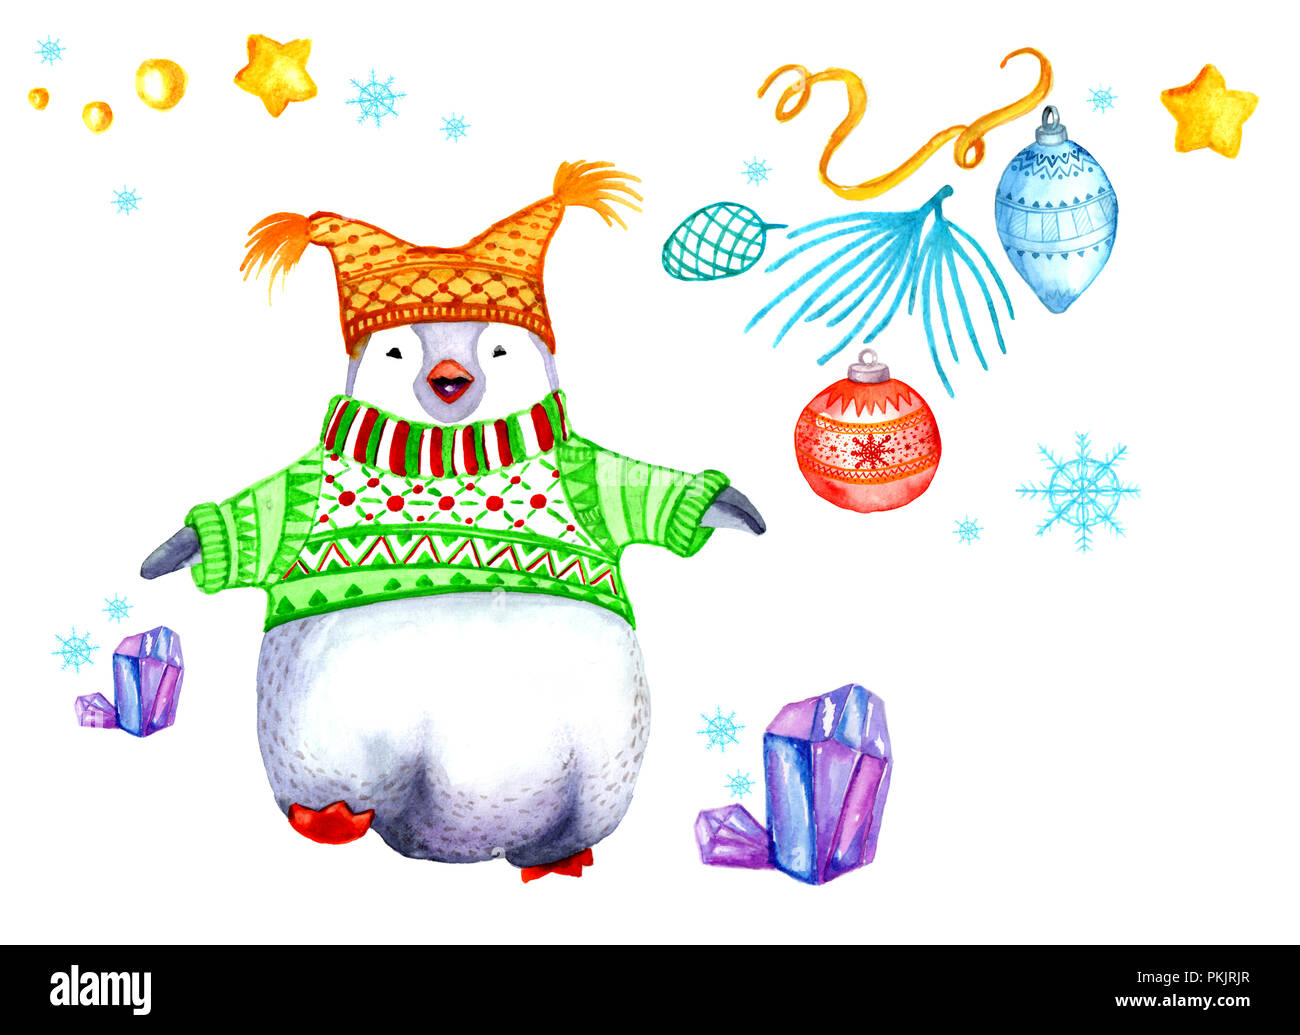 Scarf Penguin Snow Character Winter Stock Photos & Scarf Penguin ...